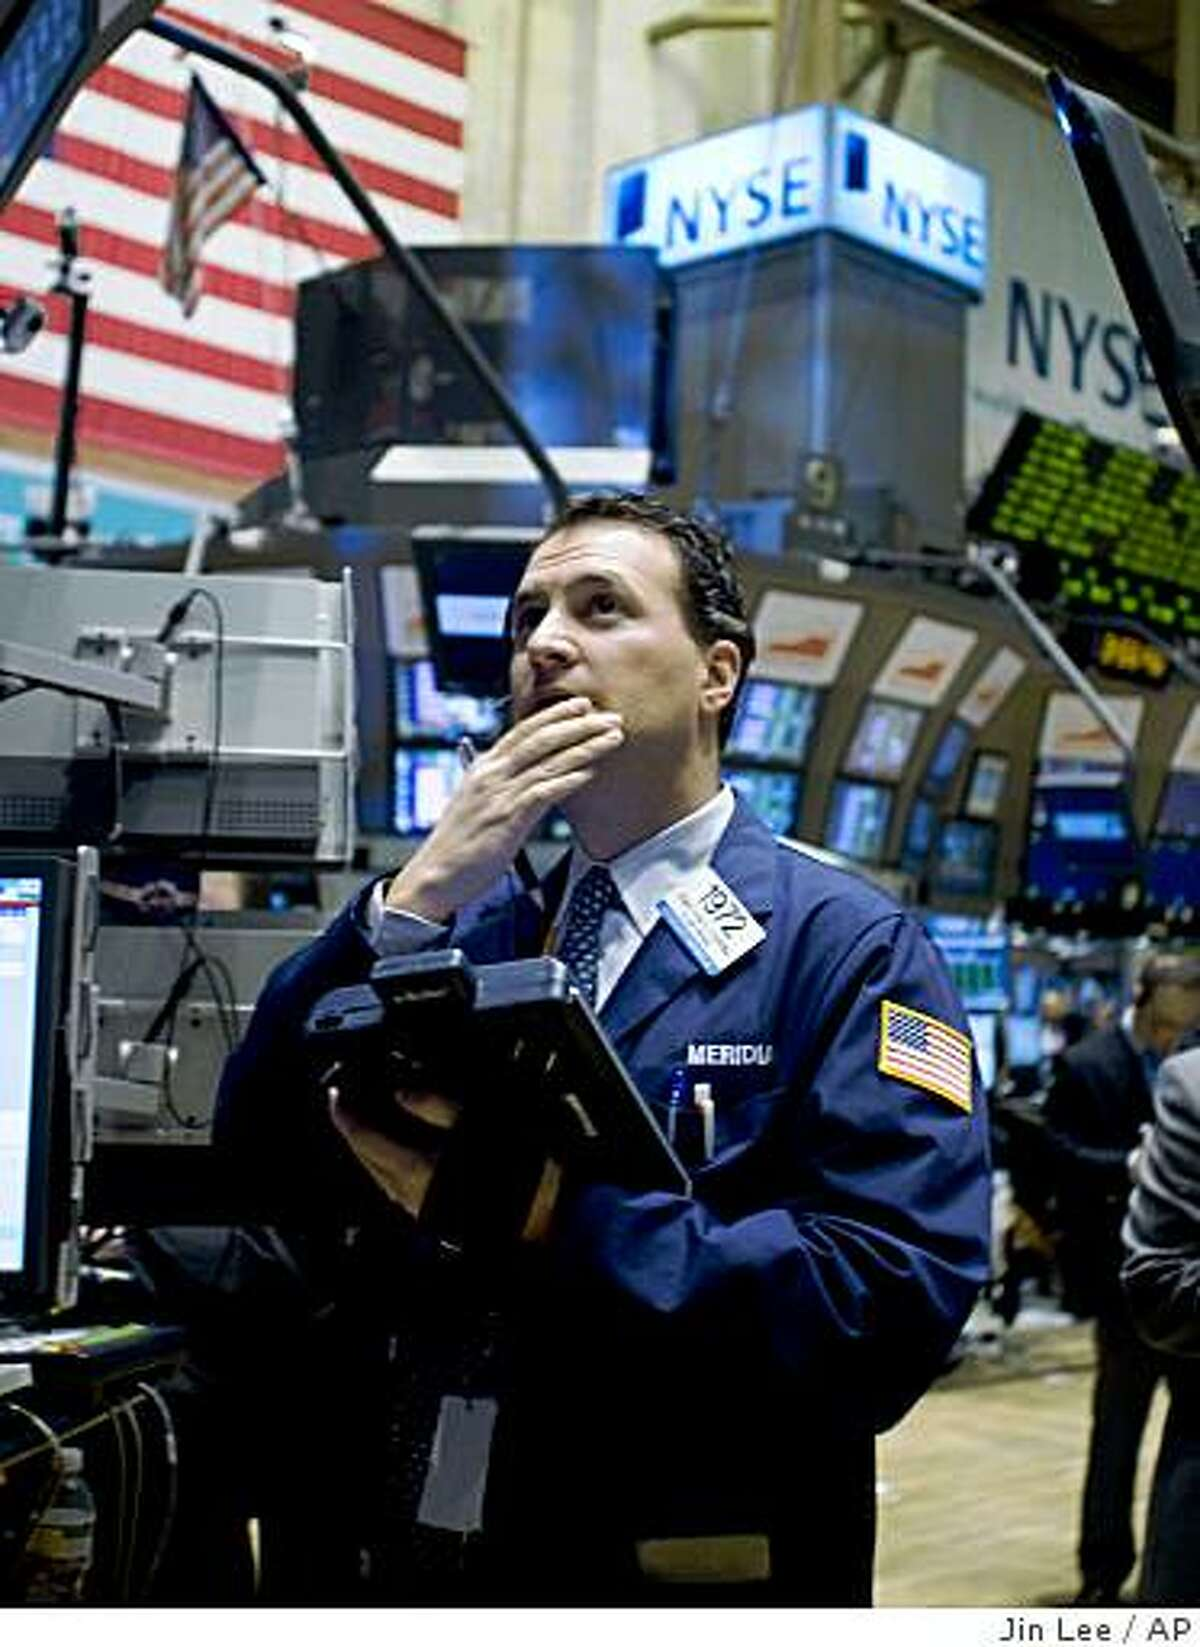 A trader works on the floor of the New York Stock Exchange on Thursday, April 2, 2009 in New York. Investors dove into stocks on Thursday as global efforts to end the financial crisis fed the market's newfound optimism that the economy is on the mend. (AP Photo/Jin Lee)